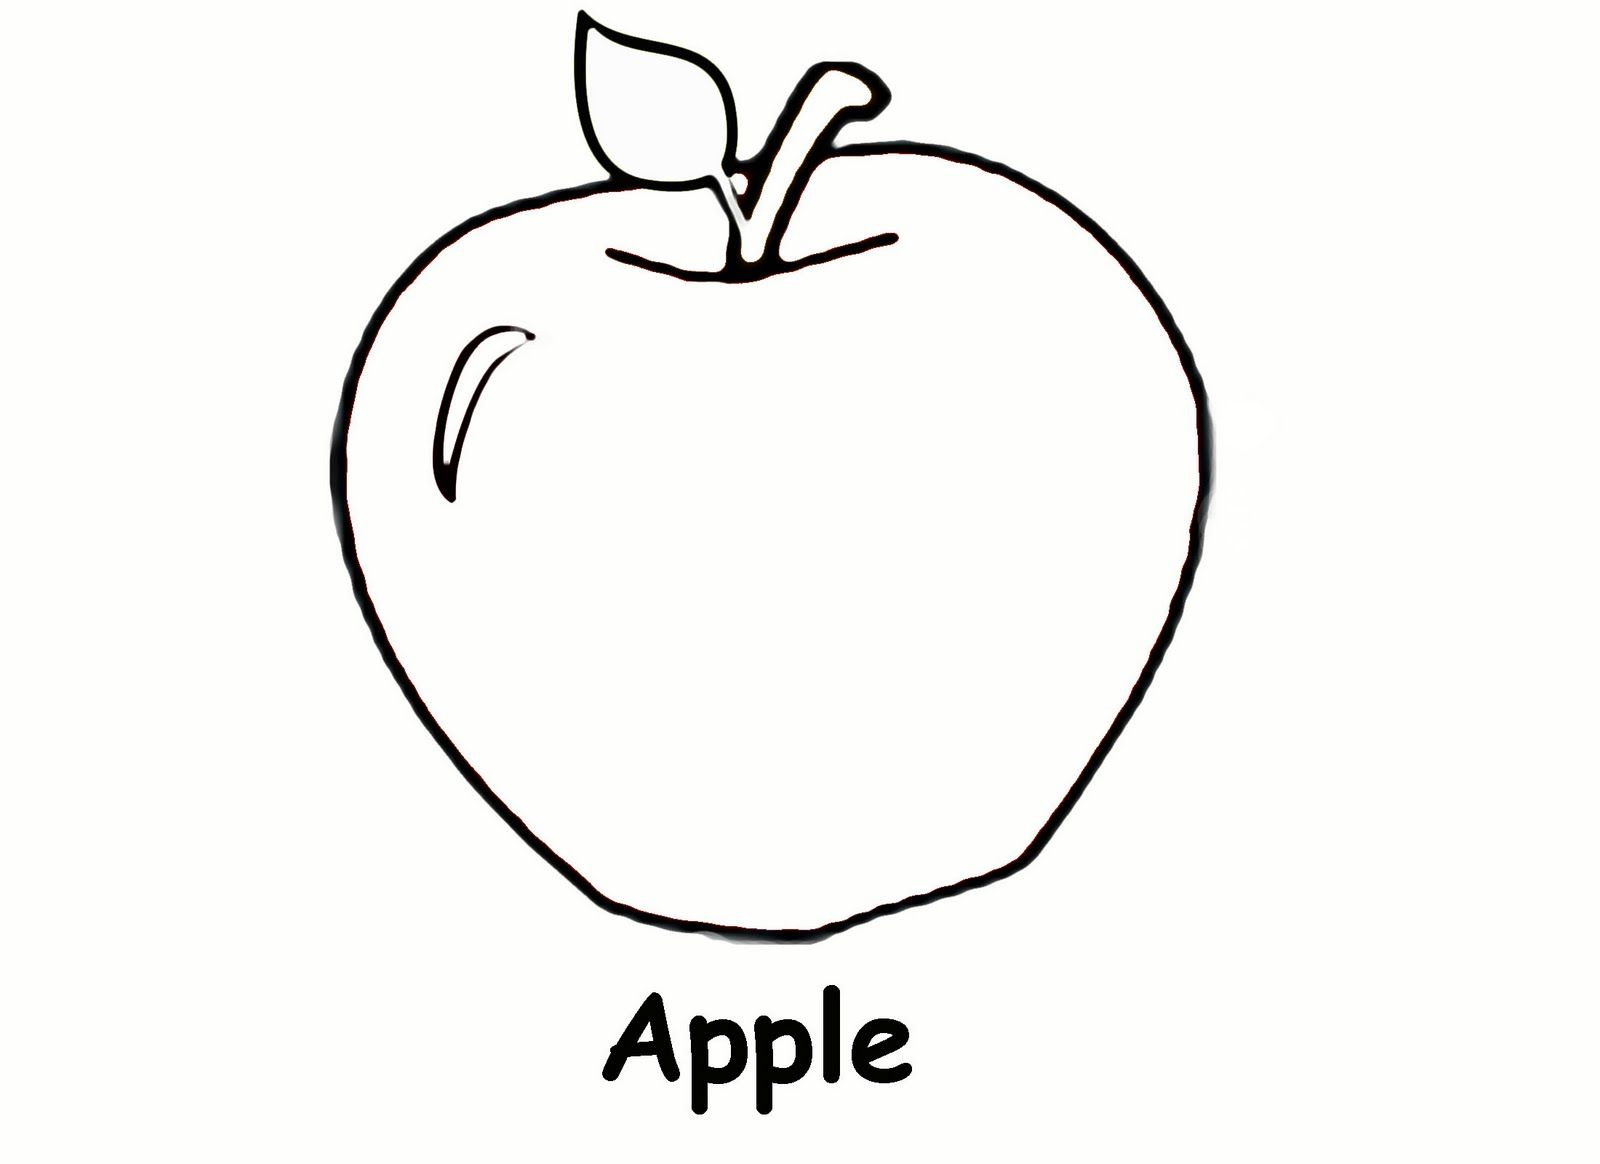 Free Printable Apple Coloring Pages For Kids With Images